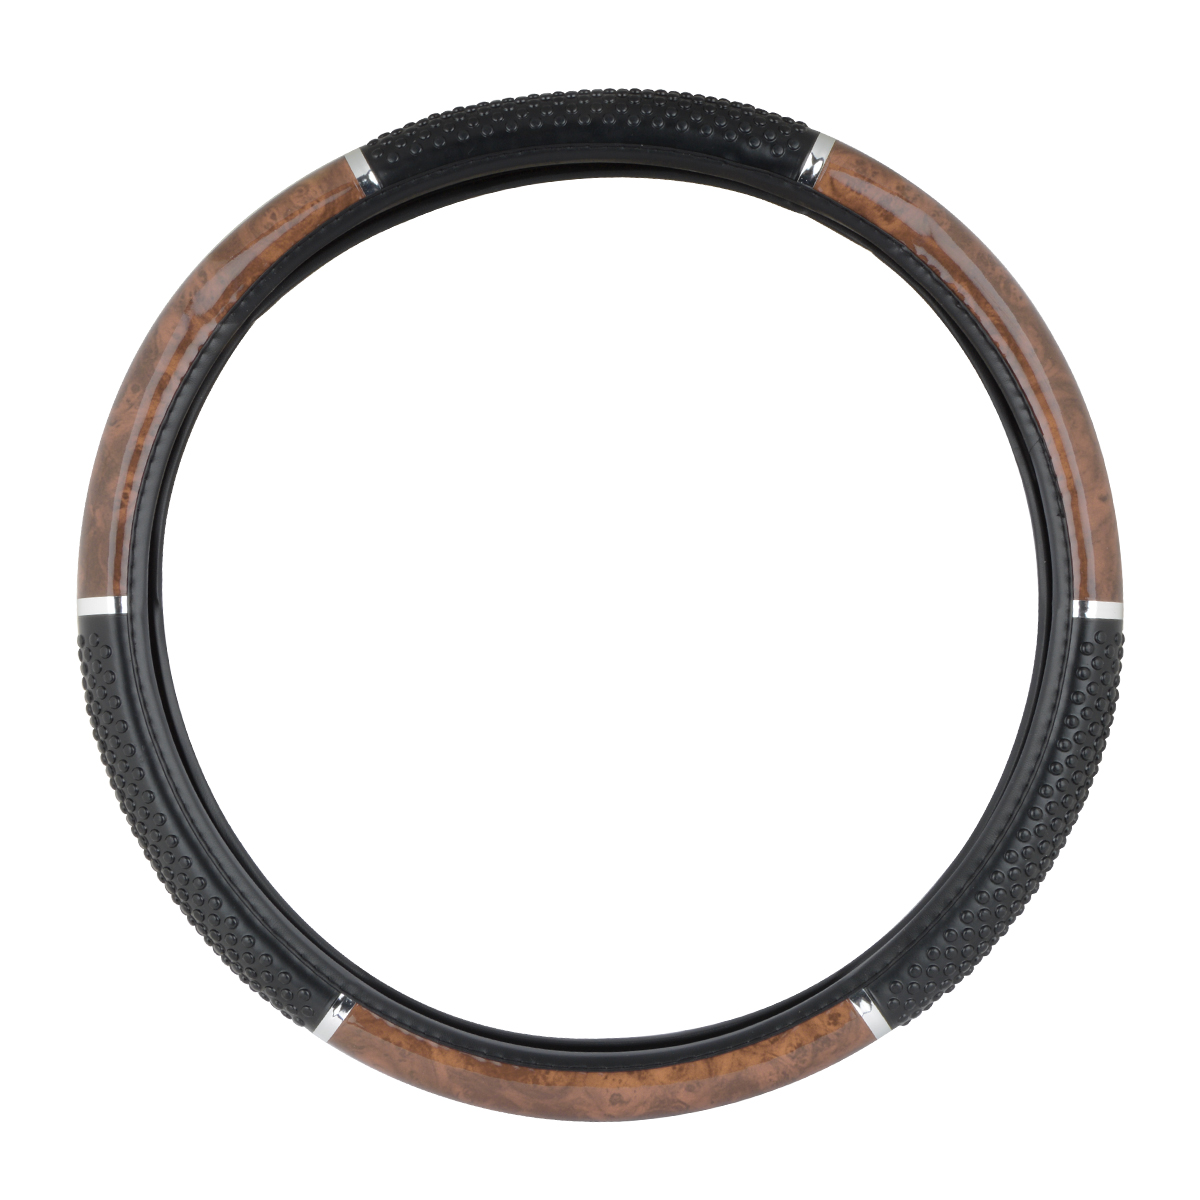 "54040 Medium Duty 18"" Steering Wheel Cover"